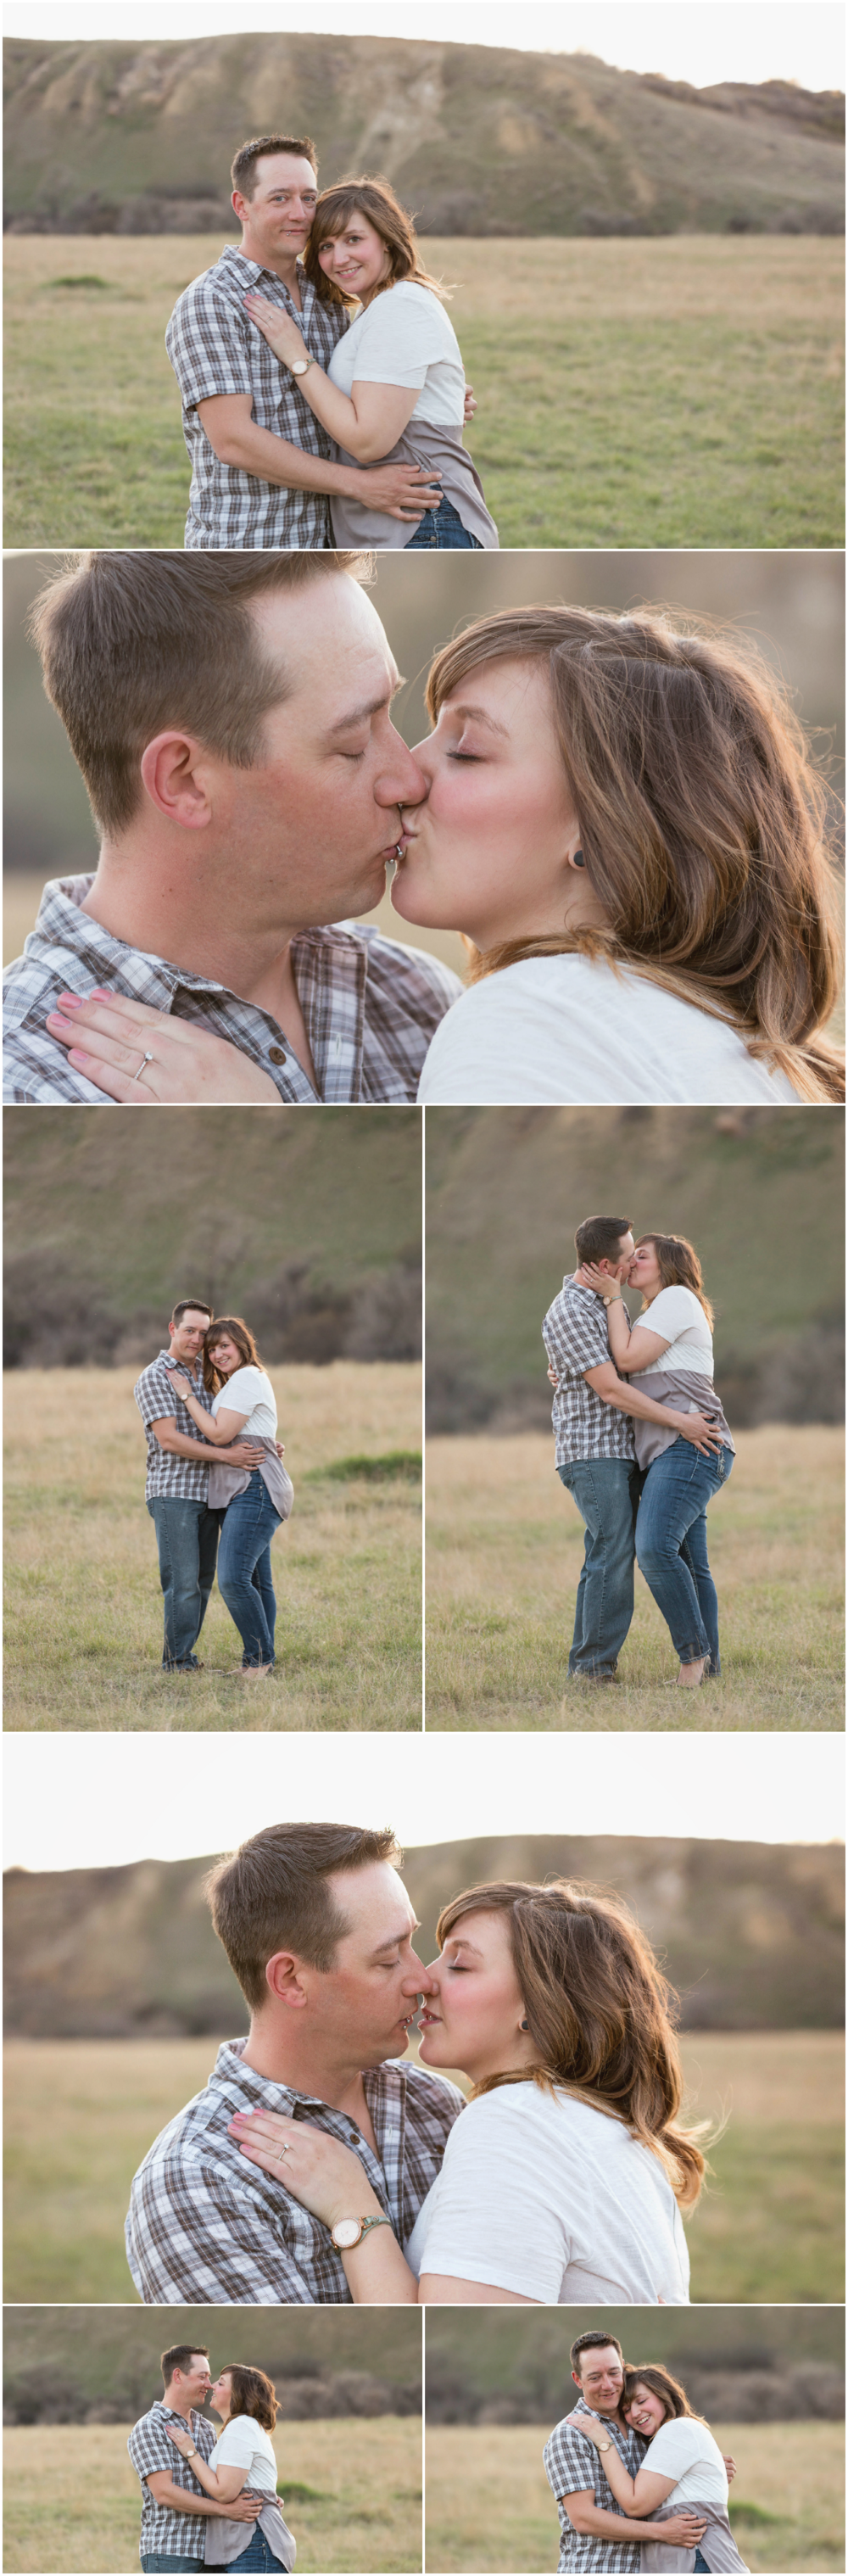 LR_medicinehat_wedding_engagement_2.png